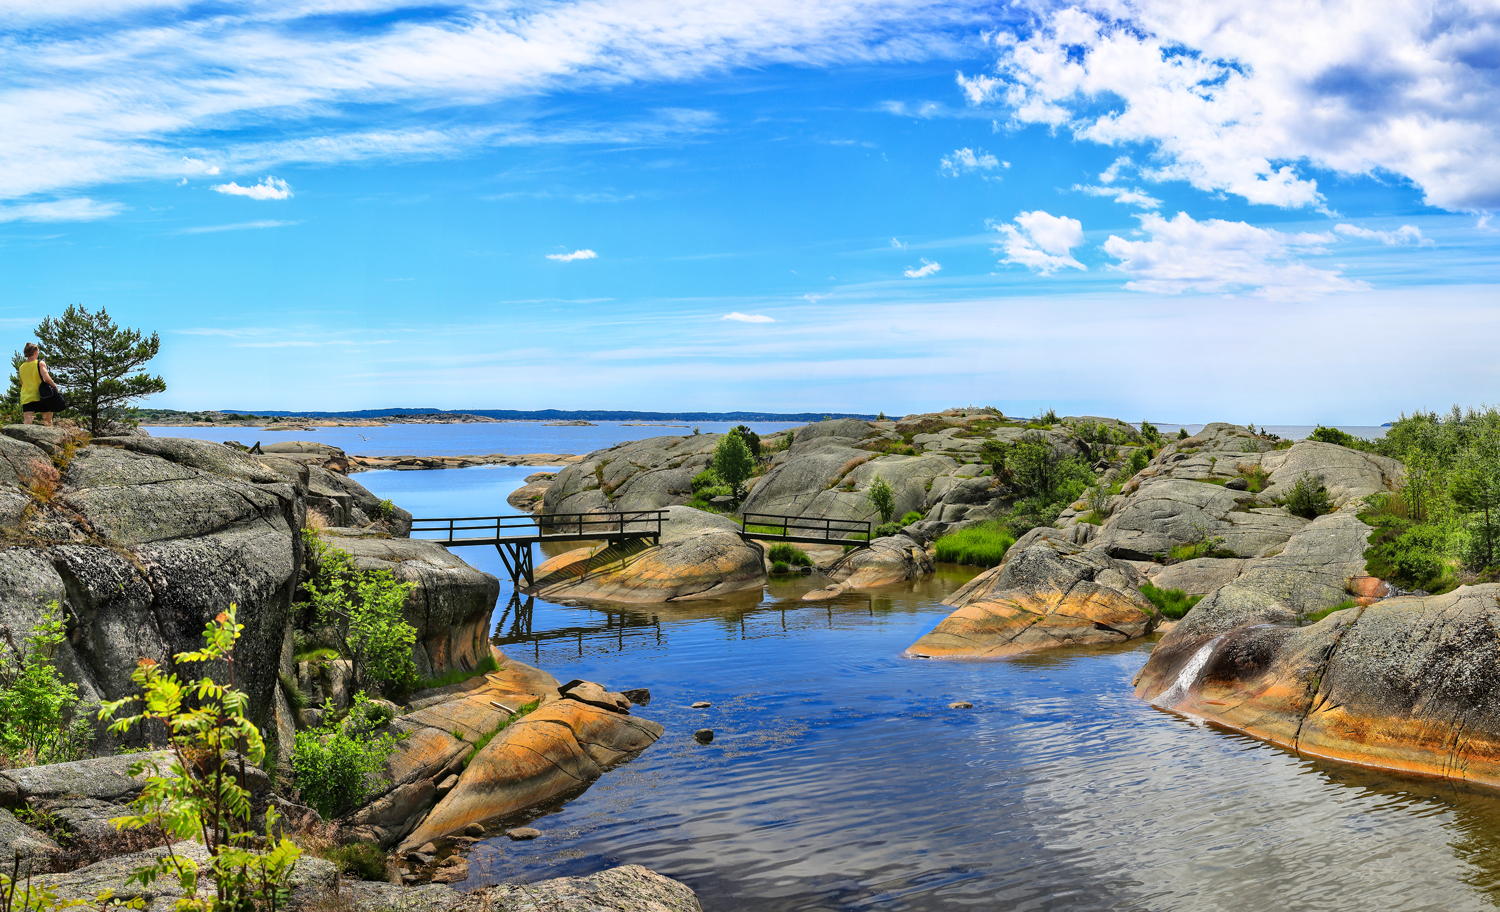 Fall in love with   THE    ARCHIPELAGO    ALL YEAR